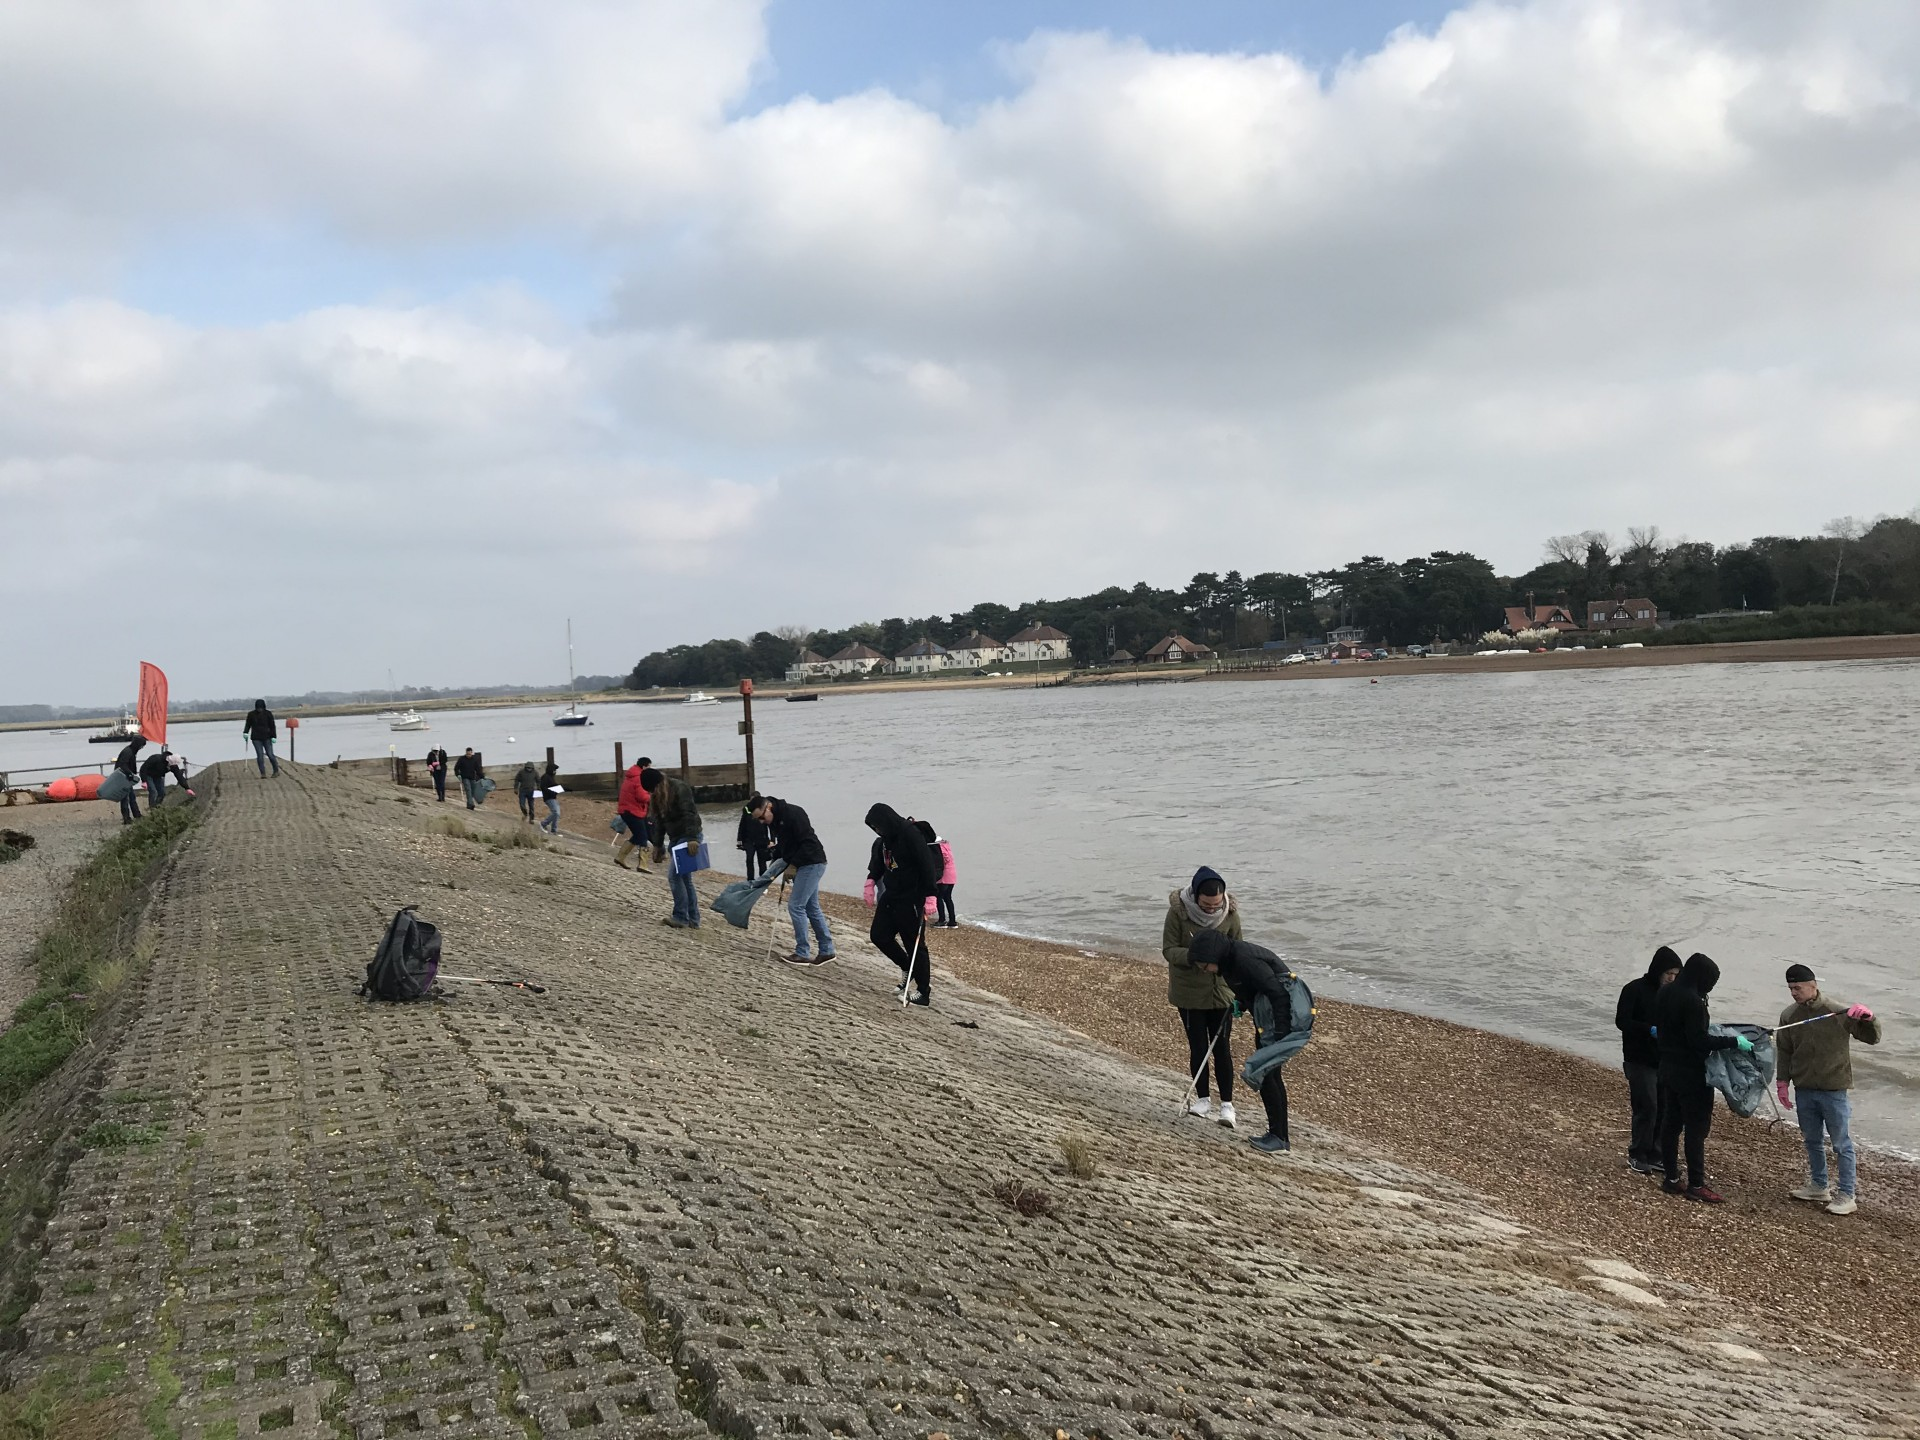 RAF Mildenhall beach cleaning for the local community.